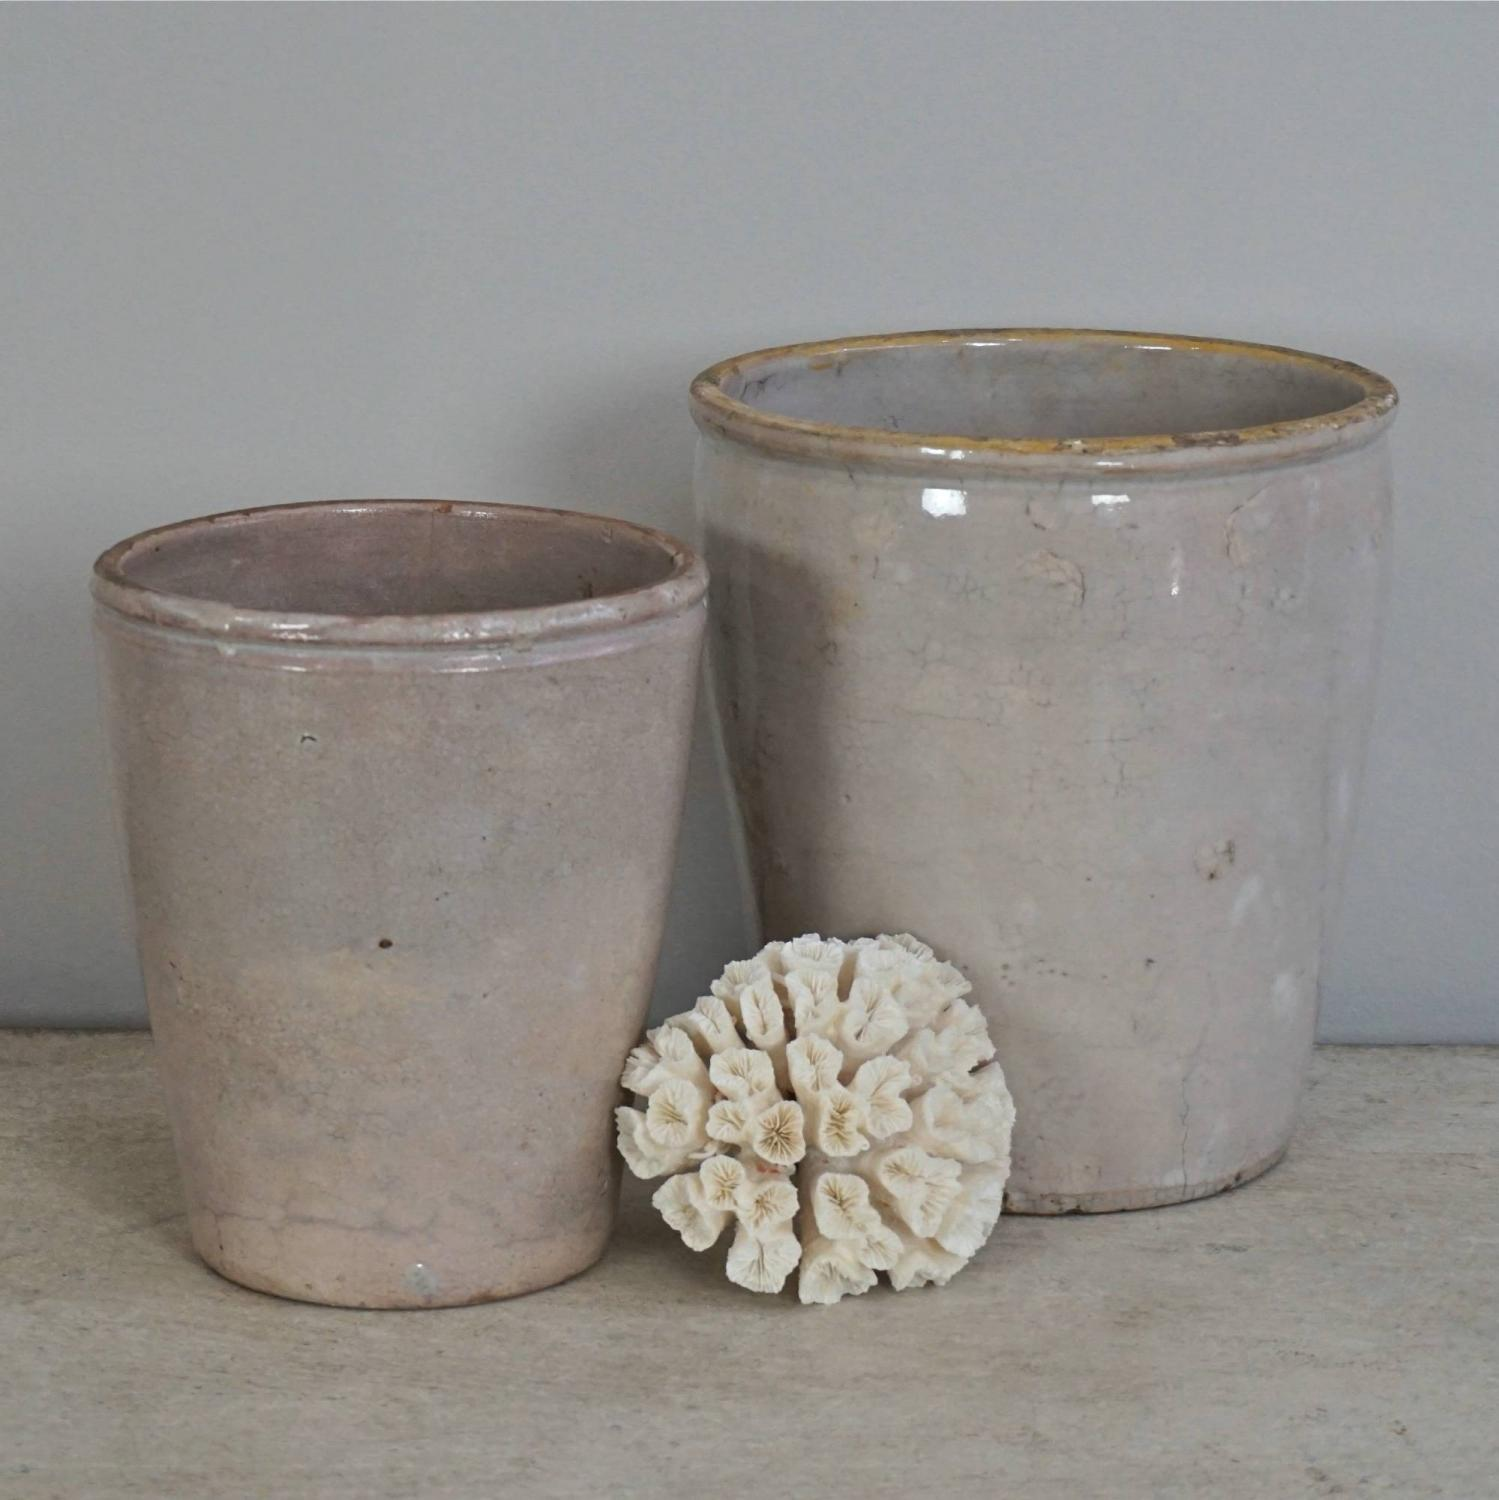 TWO 19TH CENTURY ITALIAN GLAZED CONFIT POTS